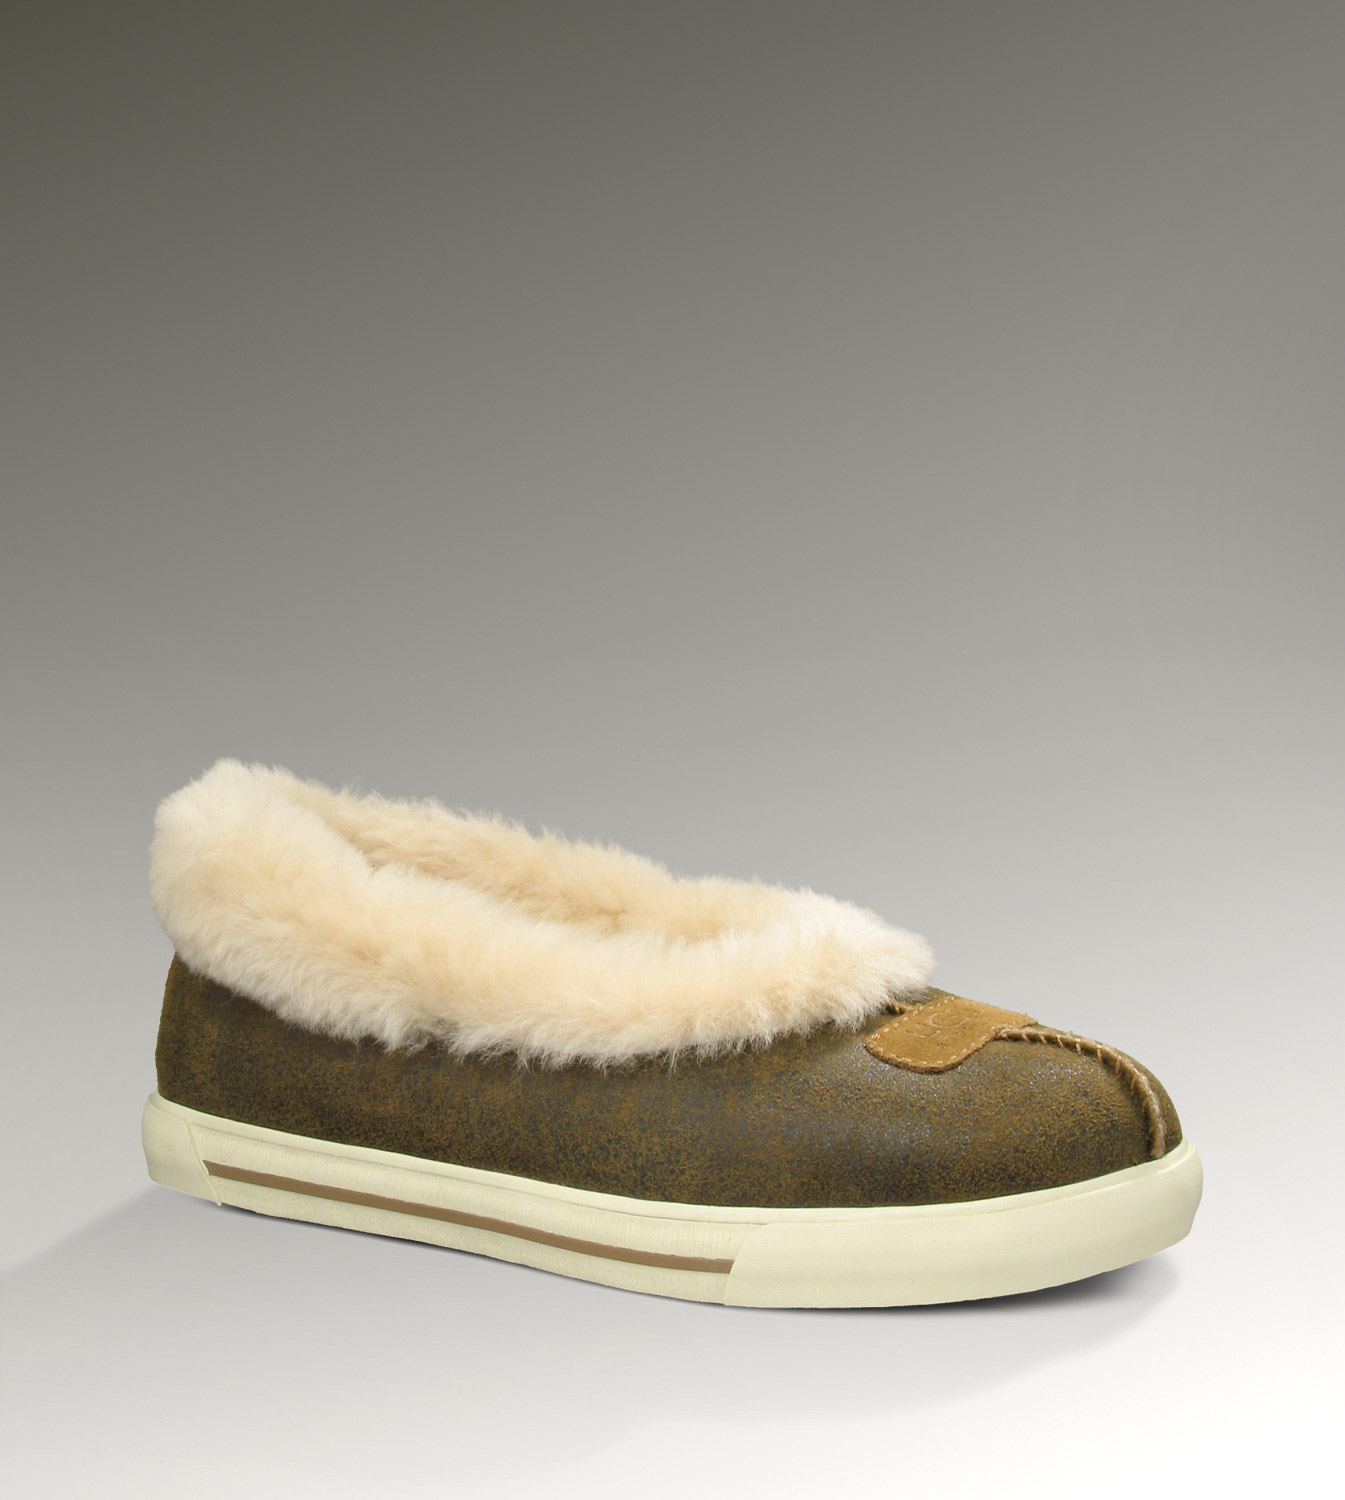 UGG Rylan Bomber 3048 Jacket Chestnut Slippers